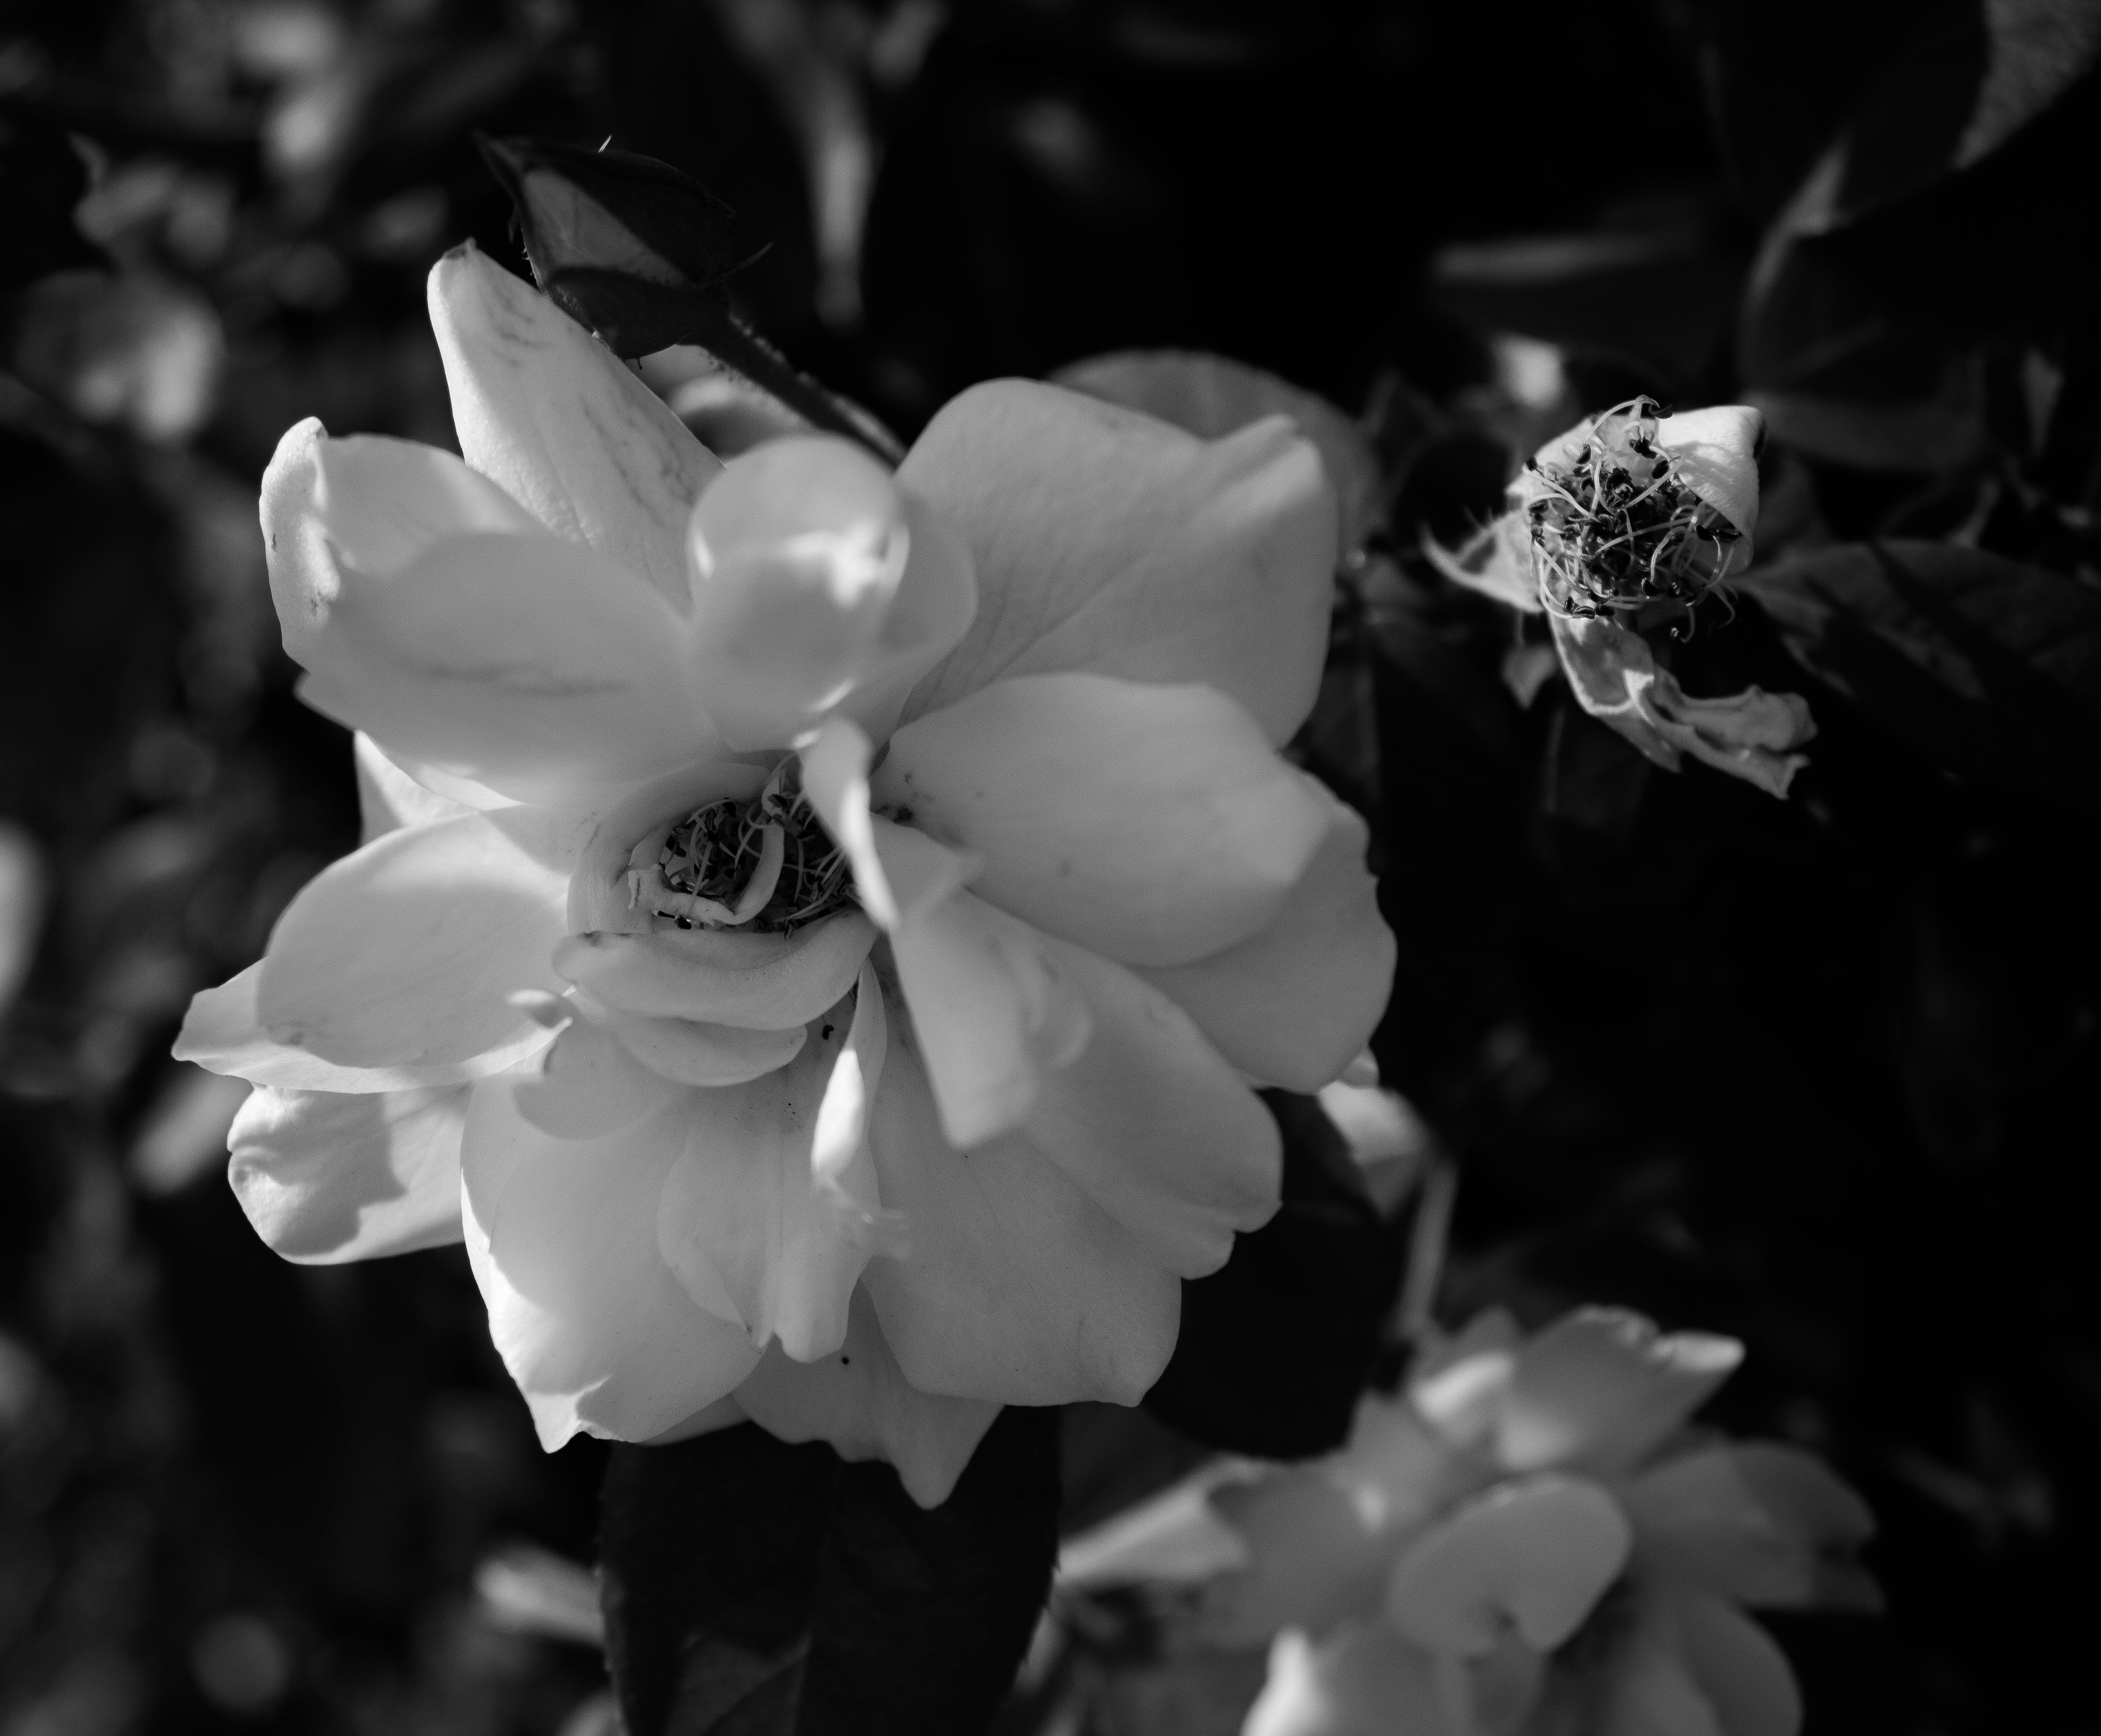 Free stock photo of beautiful flowers, black and white, flower, lonely